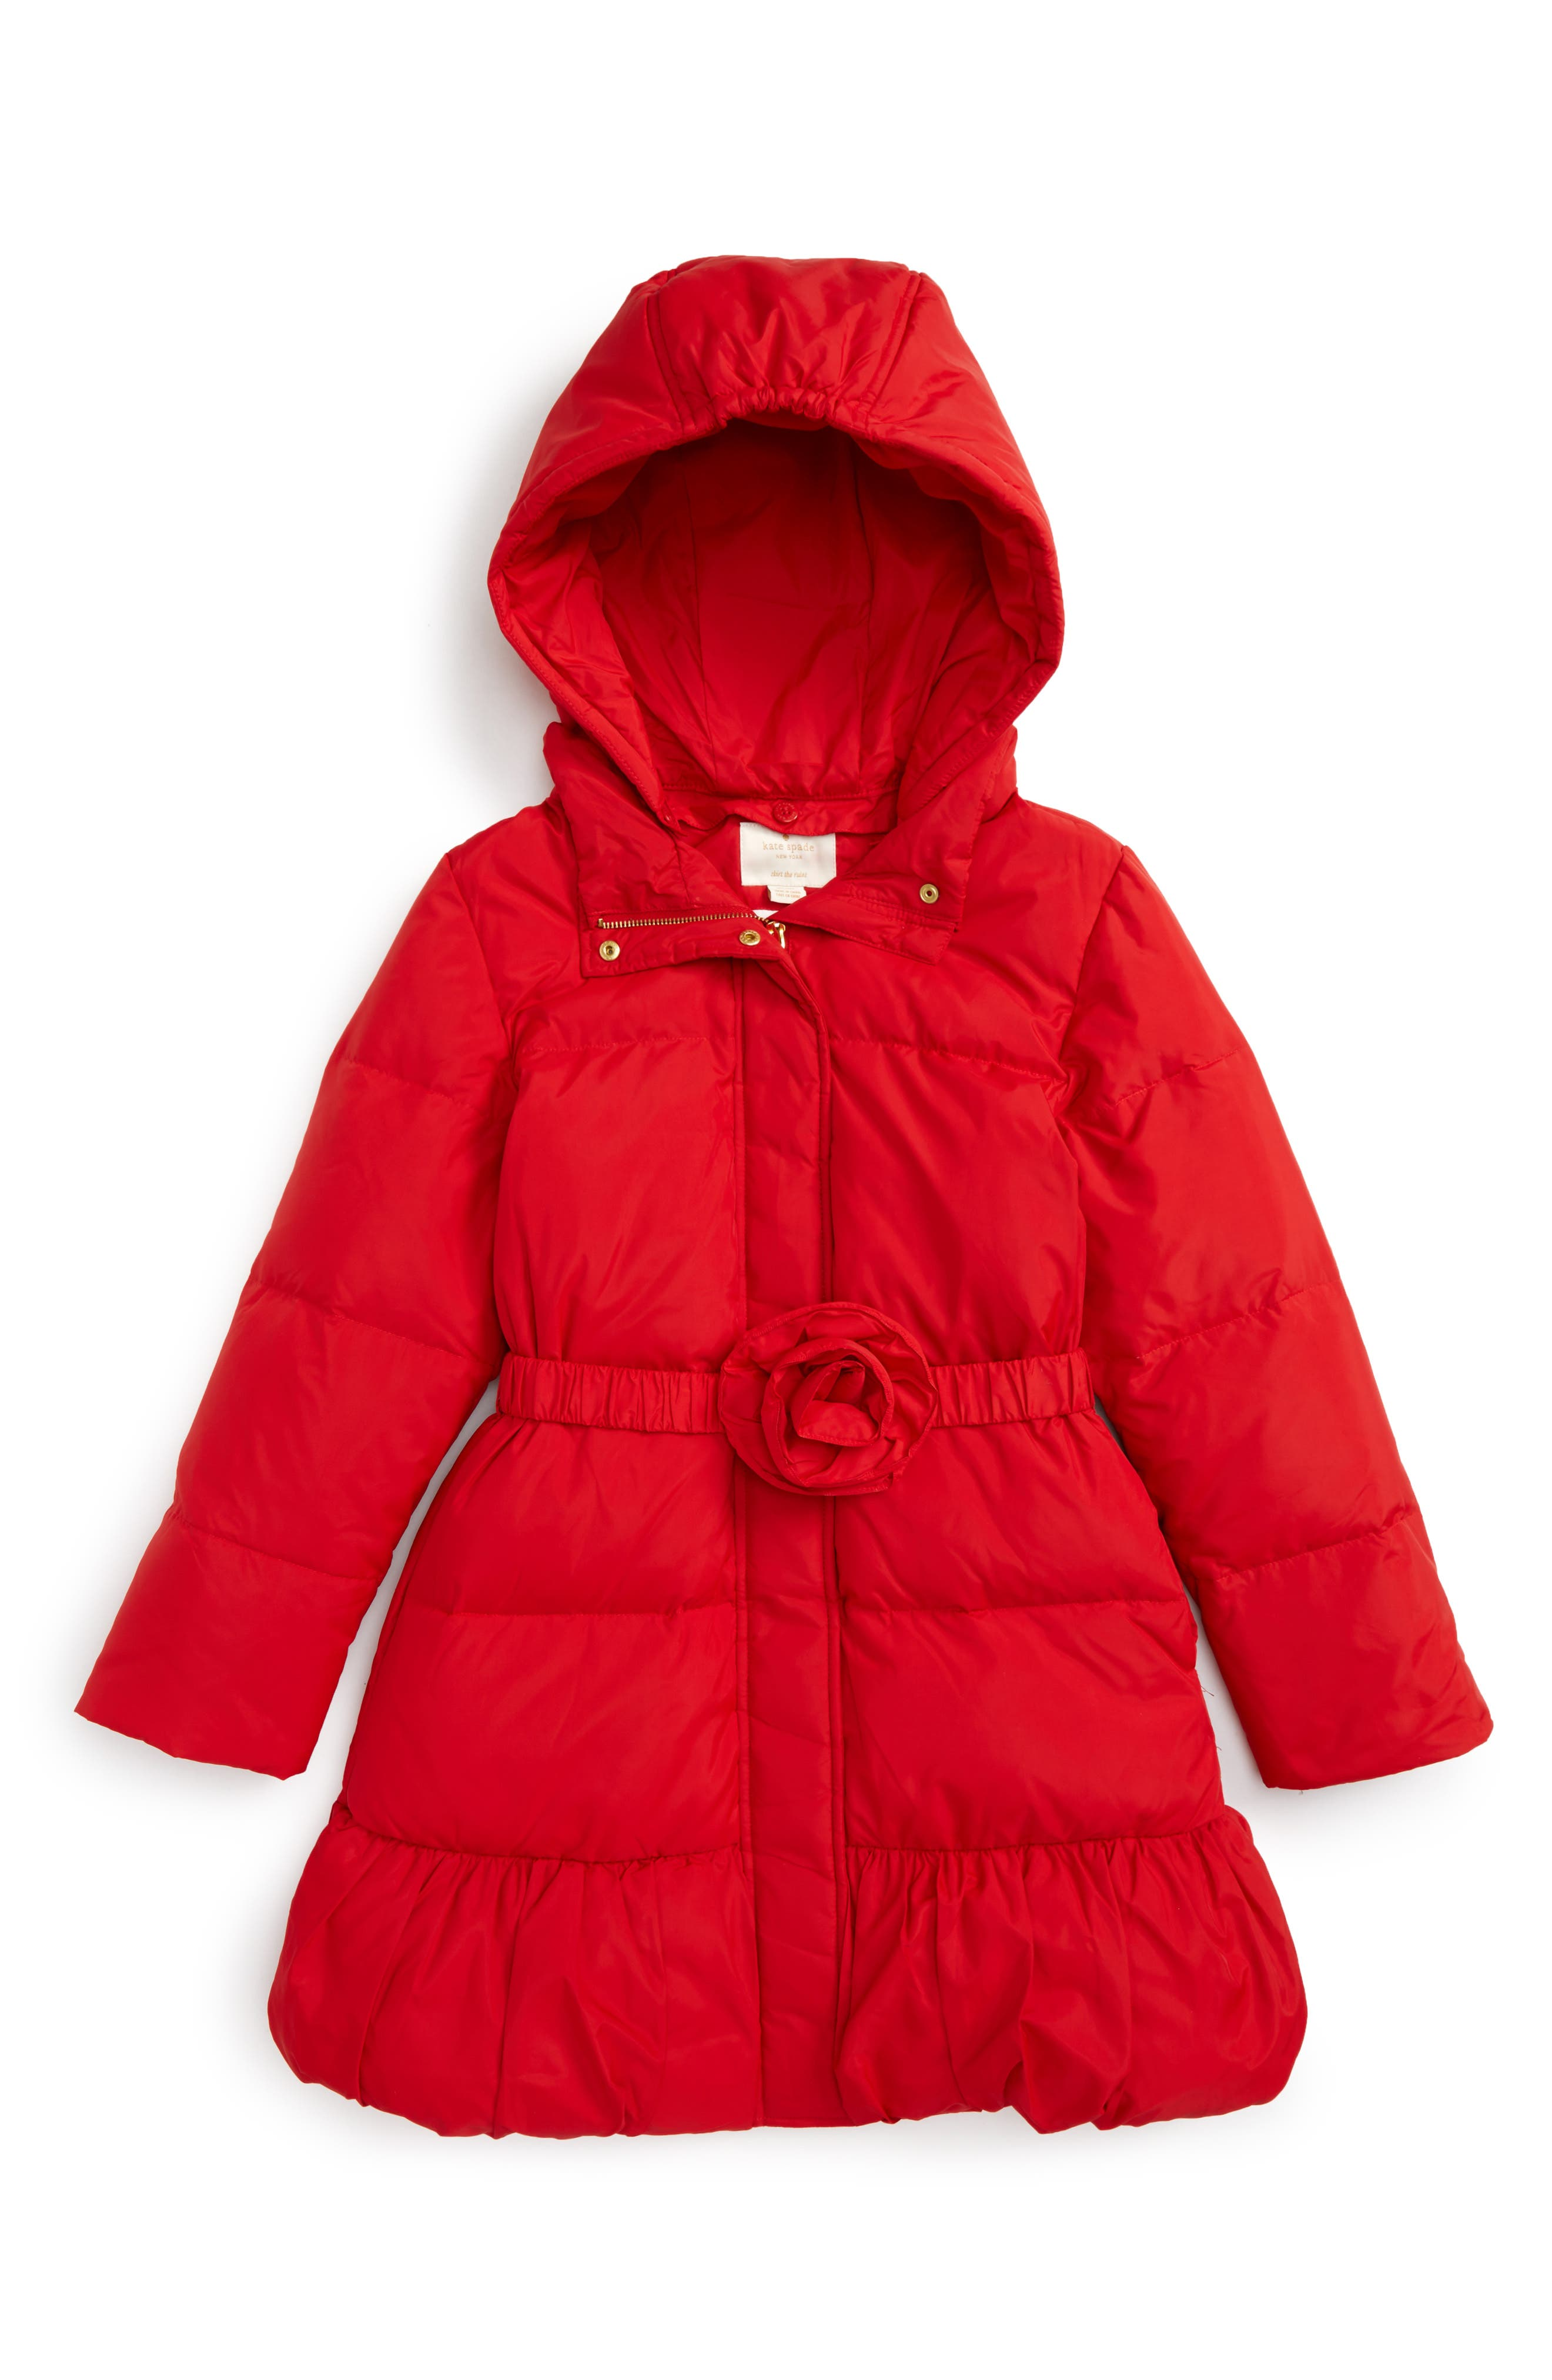 Main Image - kate spade new york rosette down puffer jacket (Big Girls)